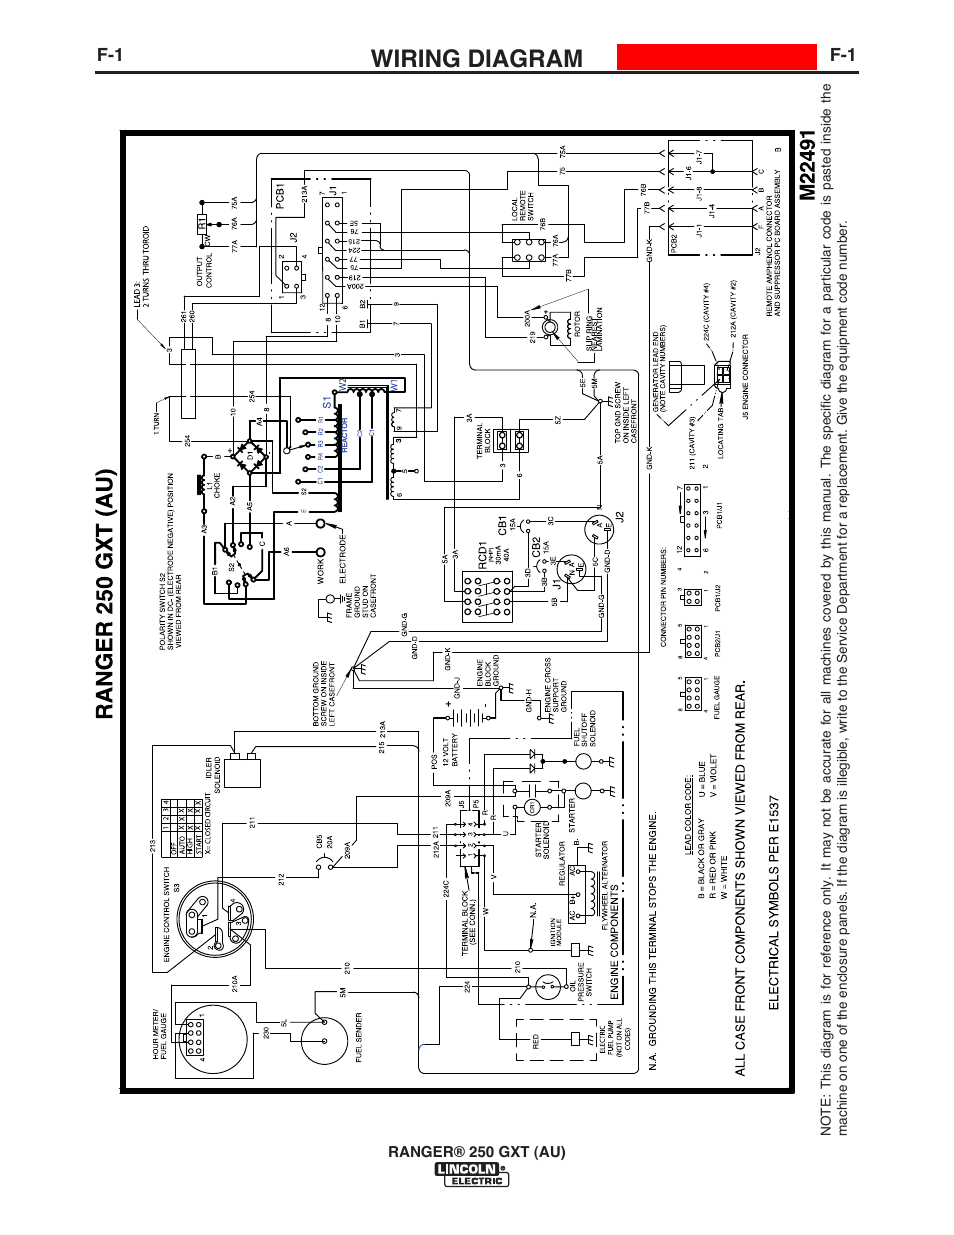 hight resolution of lincoln ranger 9 wiring diagram wiring diagram schematics basic starter wiring diagram 1999 lincoln wiring diagram